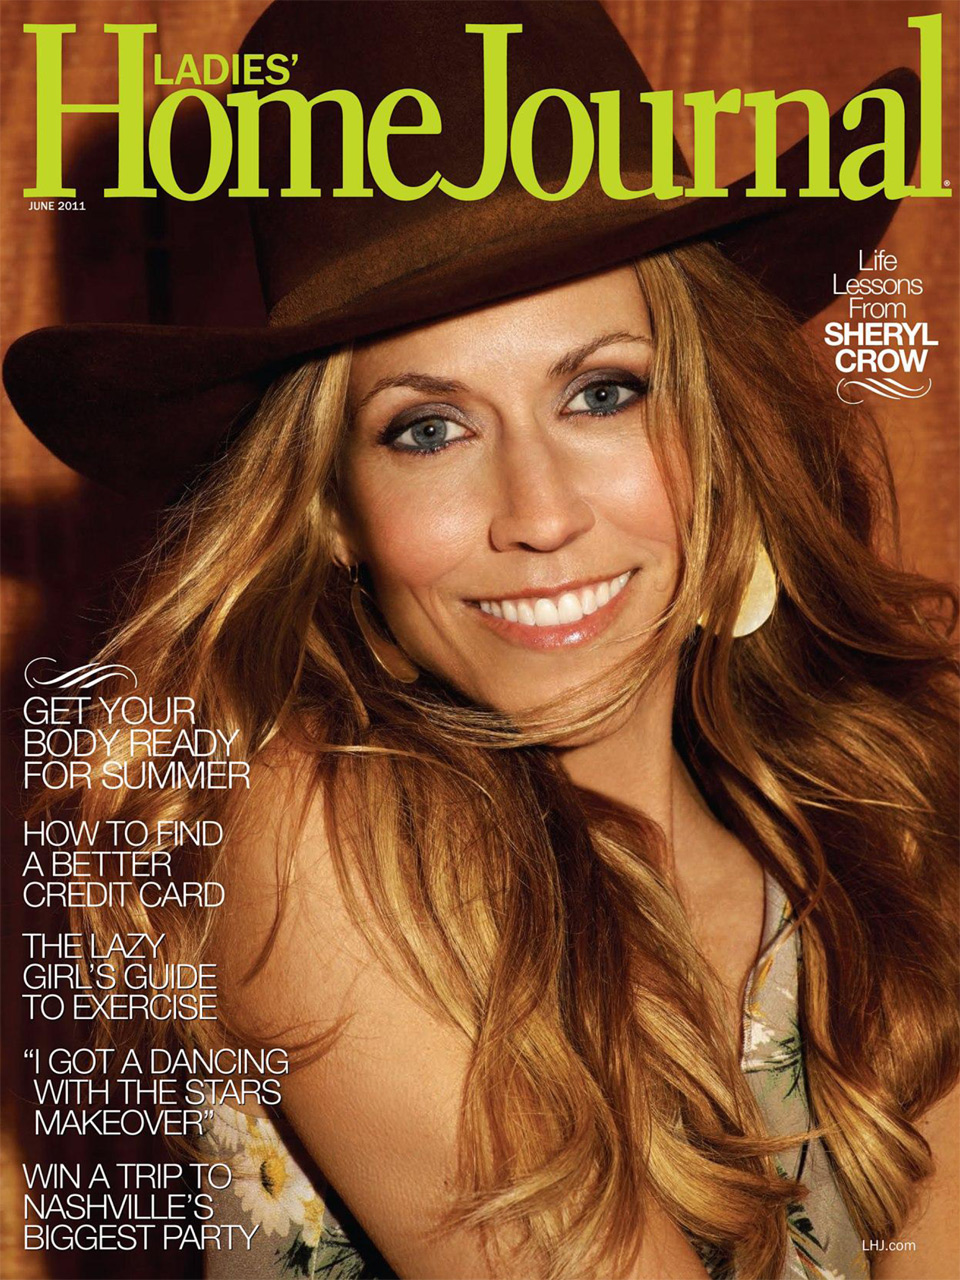 Magazine] Sheryl Crow on Ladies\' Home Journal (June 2011 issue ...